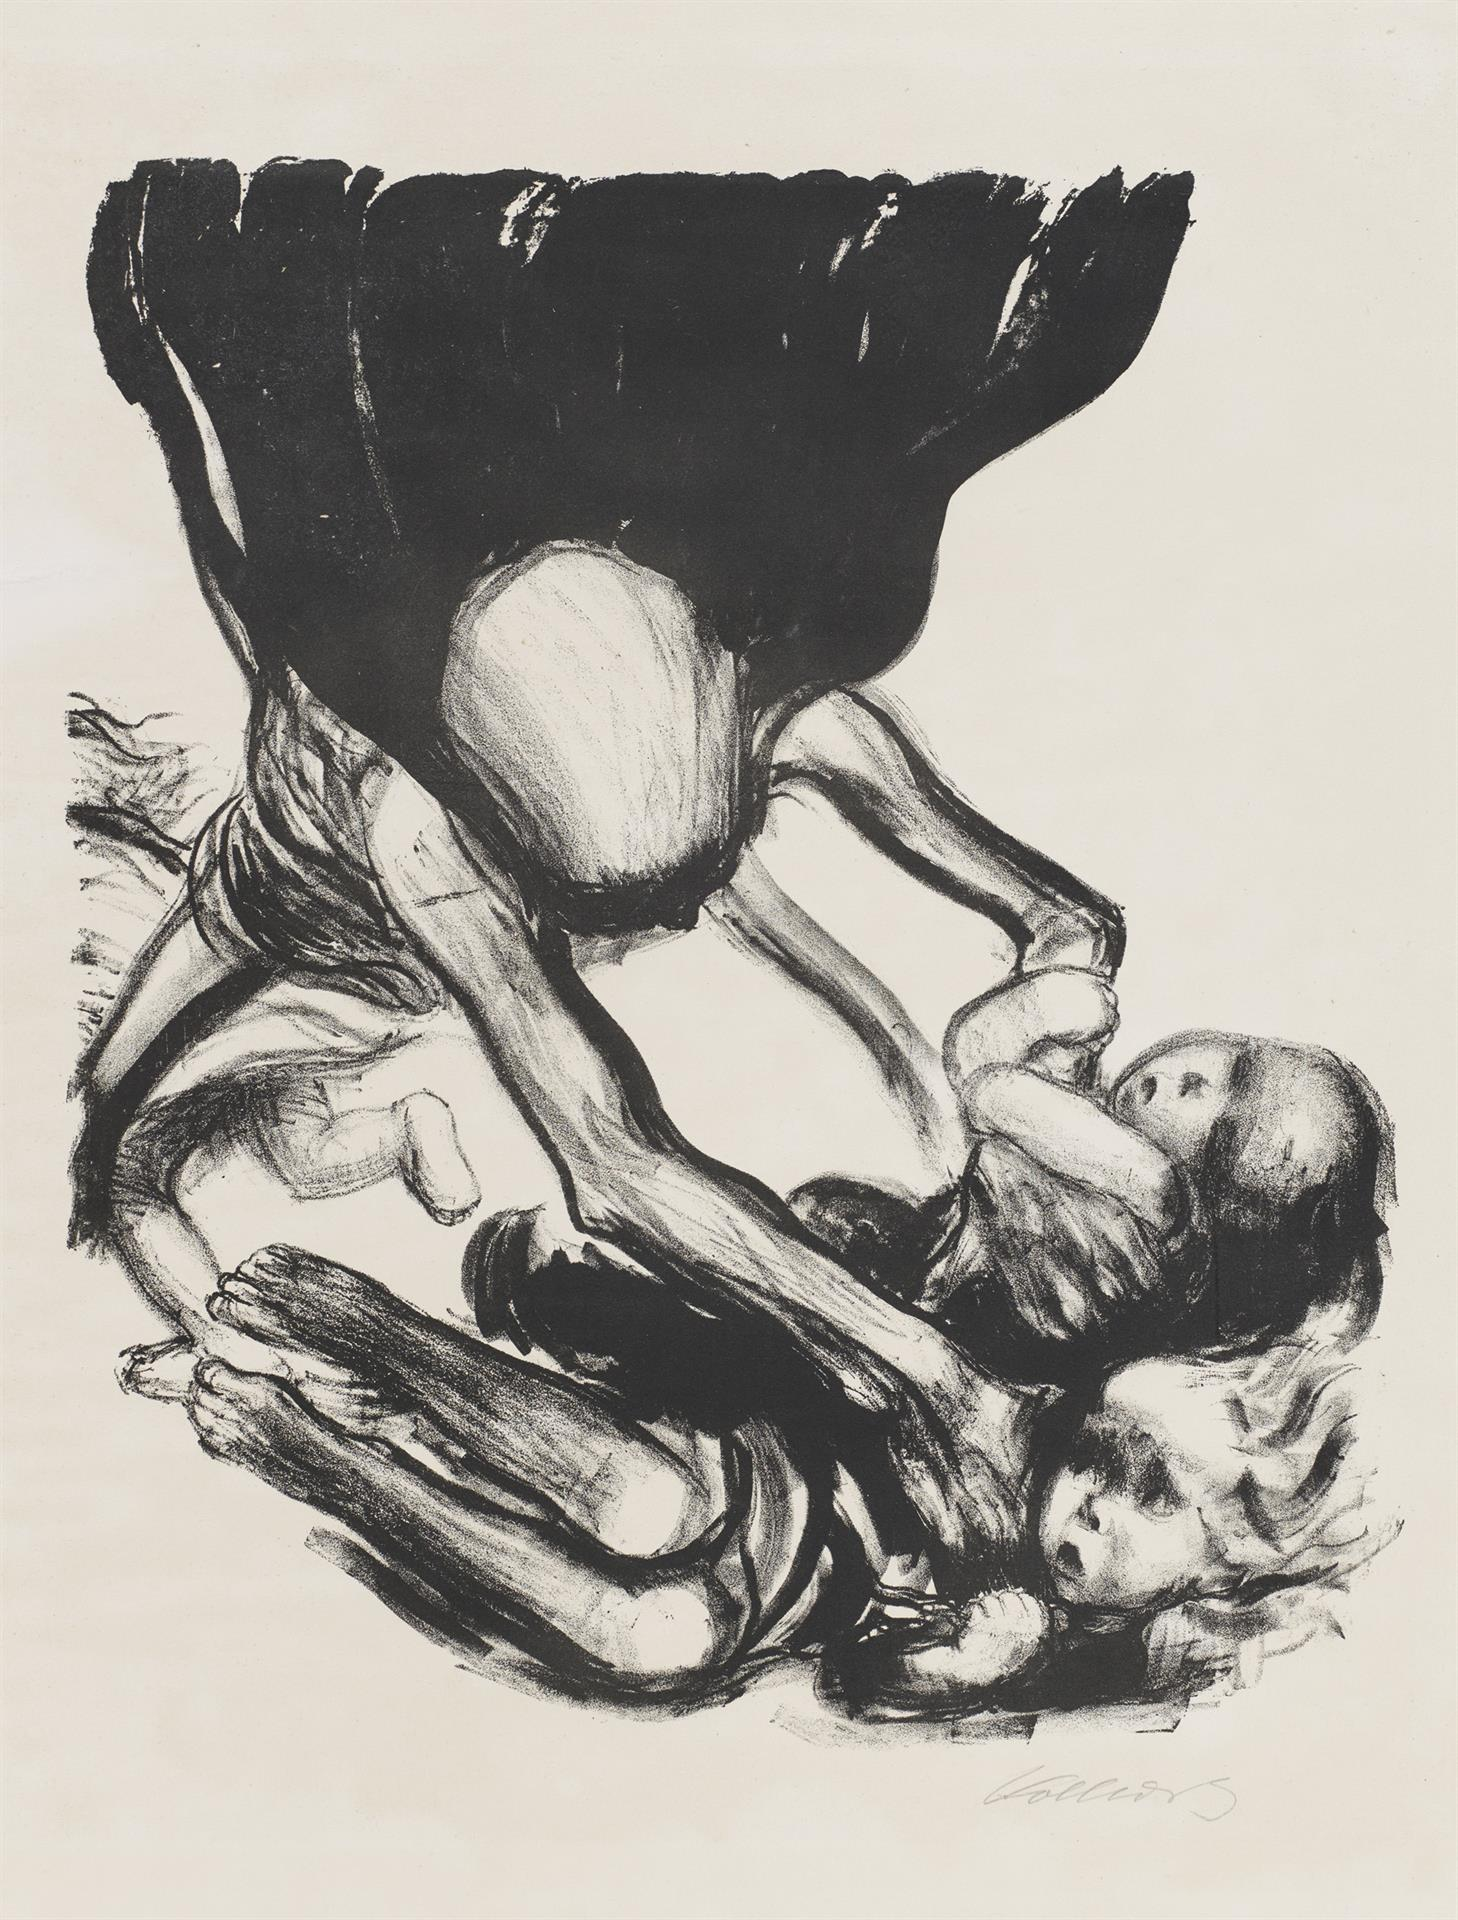 Käthe Kollwitz, Death seizes the Children, sheet 3 of the series »Death«, 1934, crayon lithograph, Kn 266 II b, Cologne Kollwitz Collection © Käthe Kollwitz Museum Köln